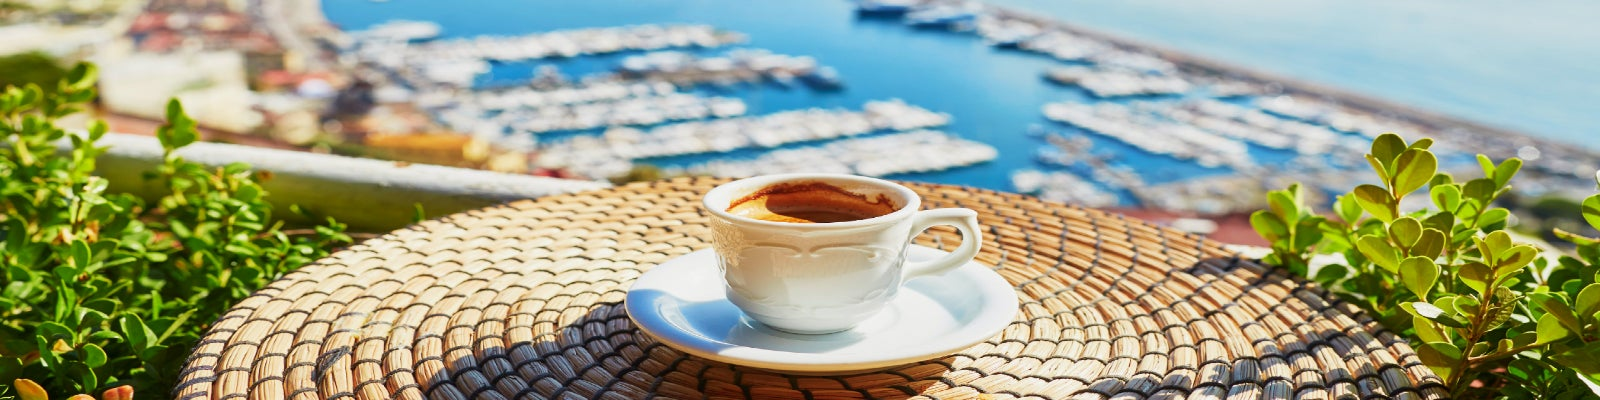 A cup of Italian coffee on a table overlooking a marina